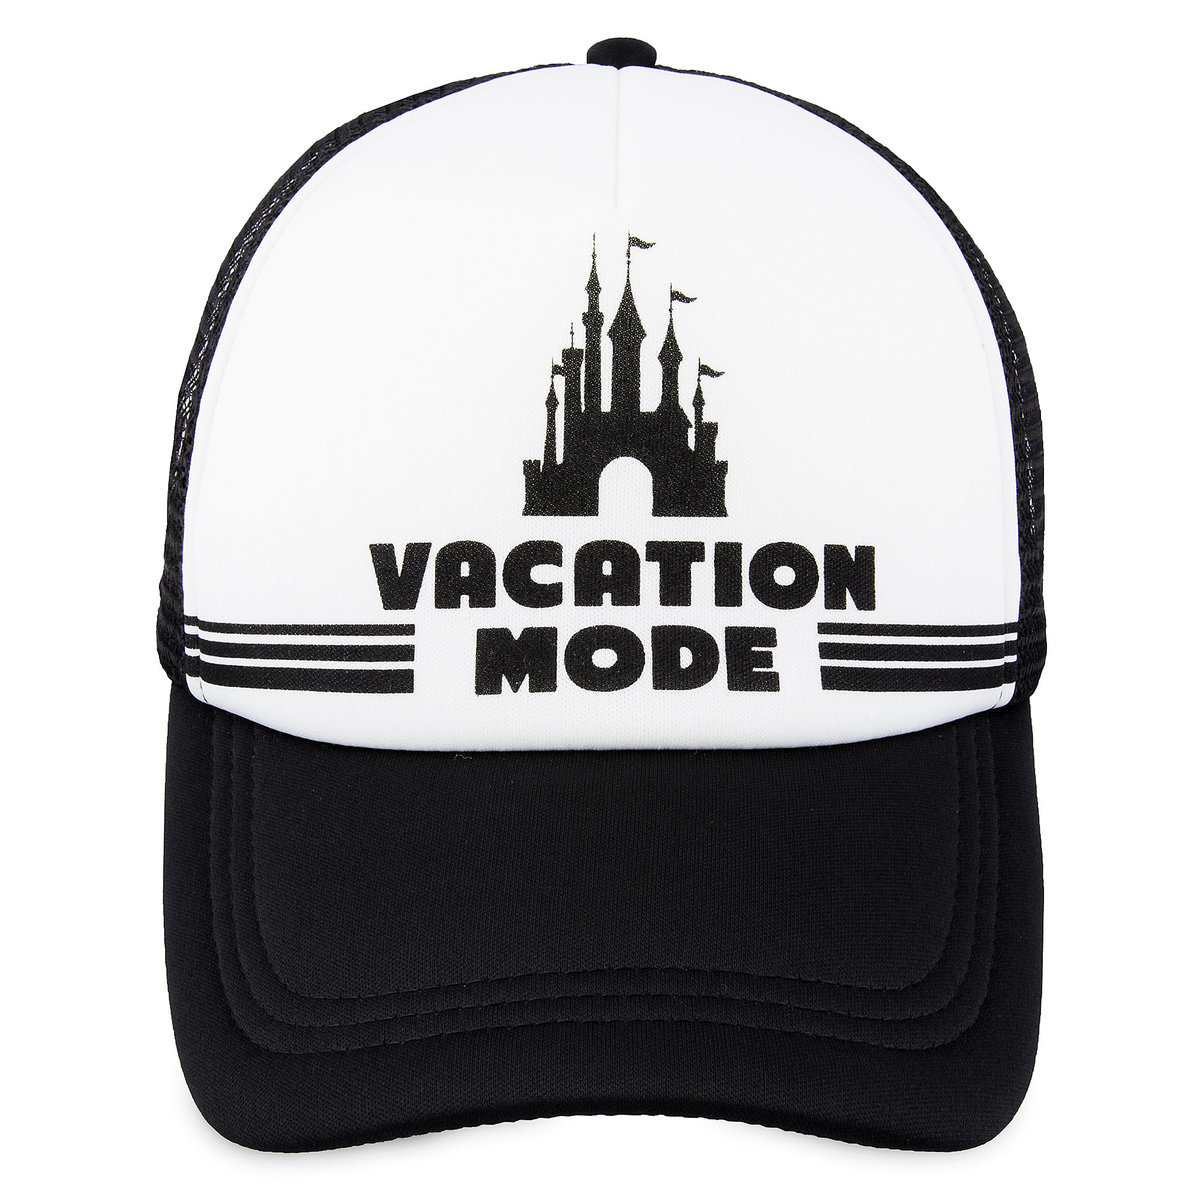 Add to My Lists. Disney Baseball Cap - Vacation Mode - Trucker Hat 2d18af2ec43